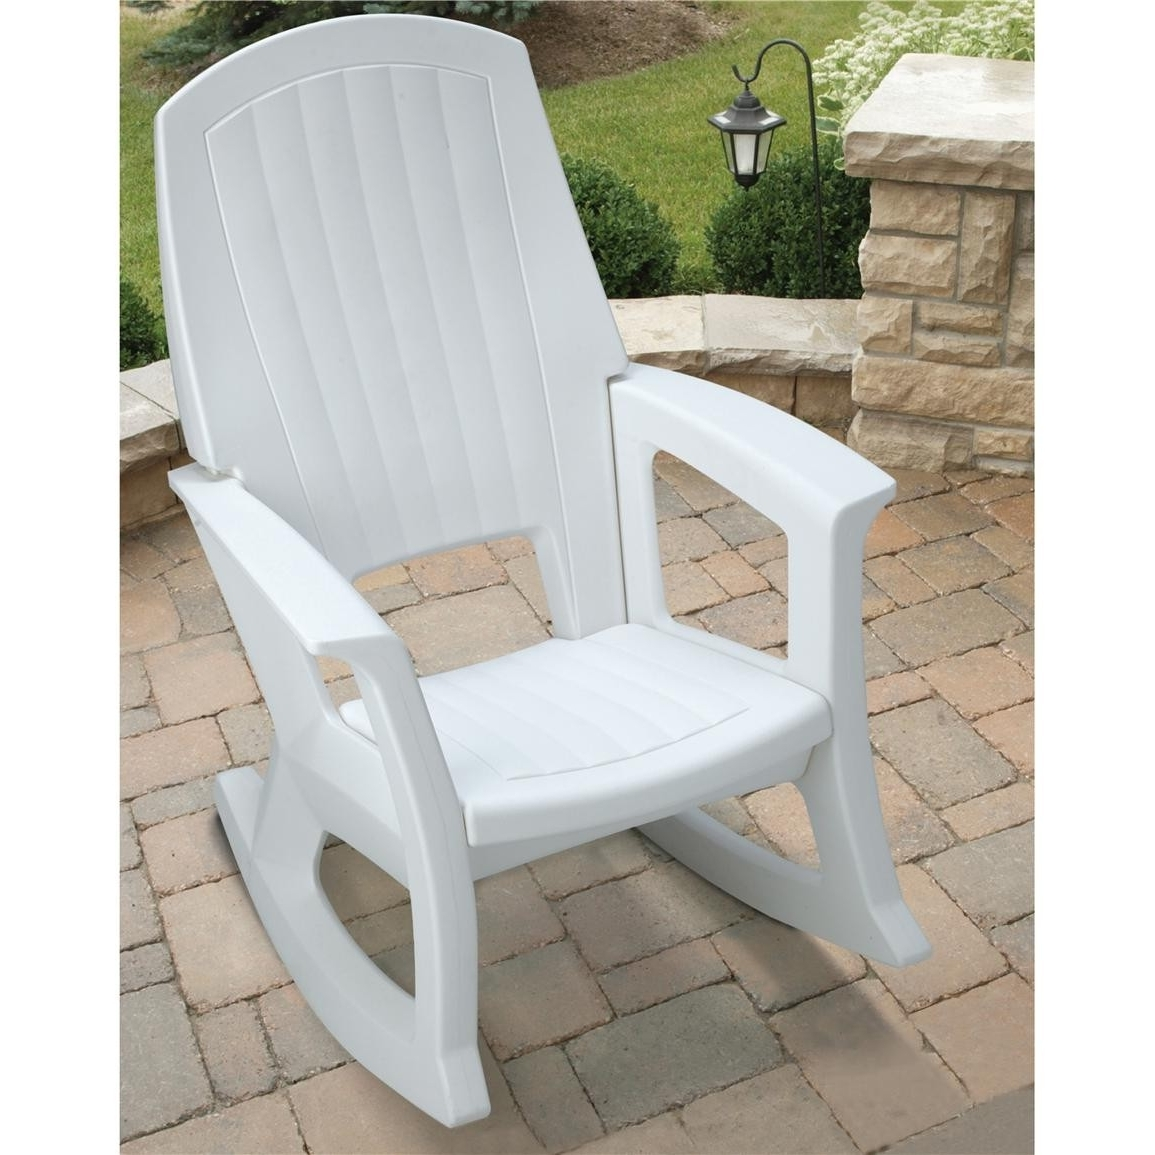 Best And Newest Semco Plastics White Resin Outdoor Patio Rocking Chair Semw Rural Within Outdoor Vinyl Rocking Chairs (View 1 of 20)